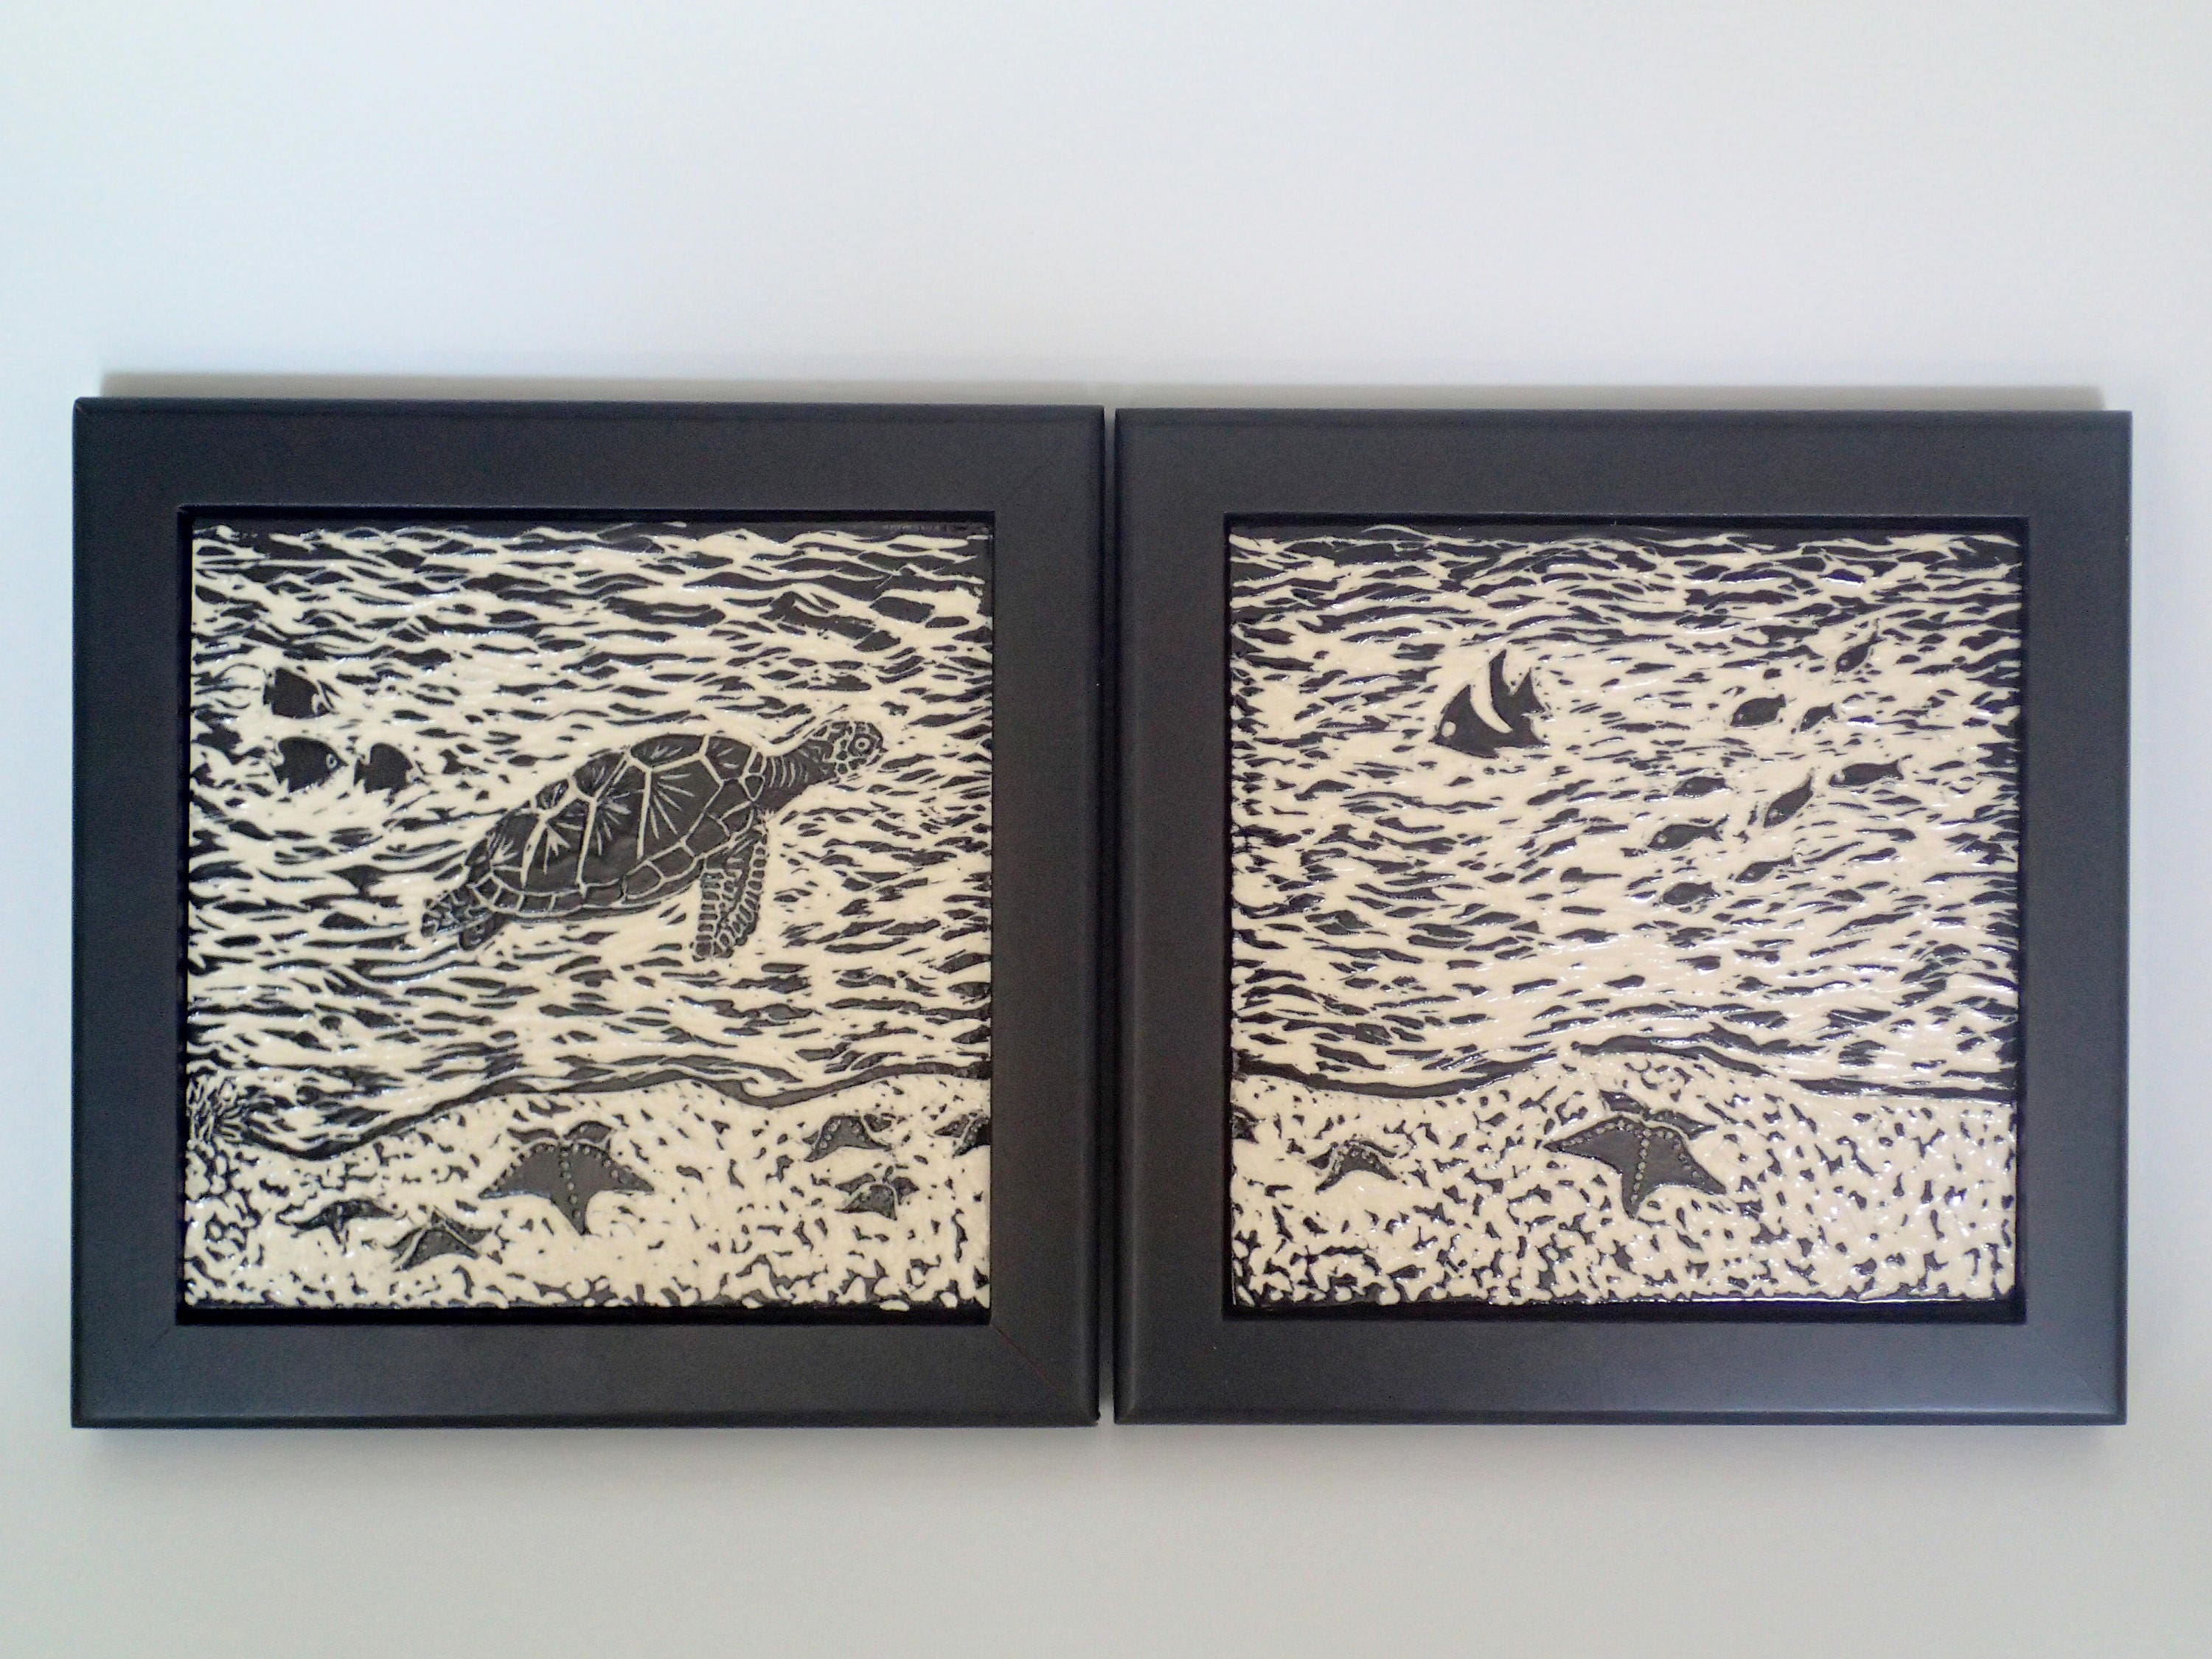 Beach house art framed ceramic tiles art tiles diptych wall art beach house art framed ceramic tiles art tiles diptych wall art black dailygadgetfo Choice Image